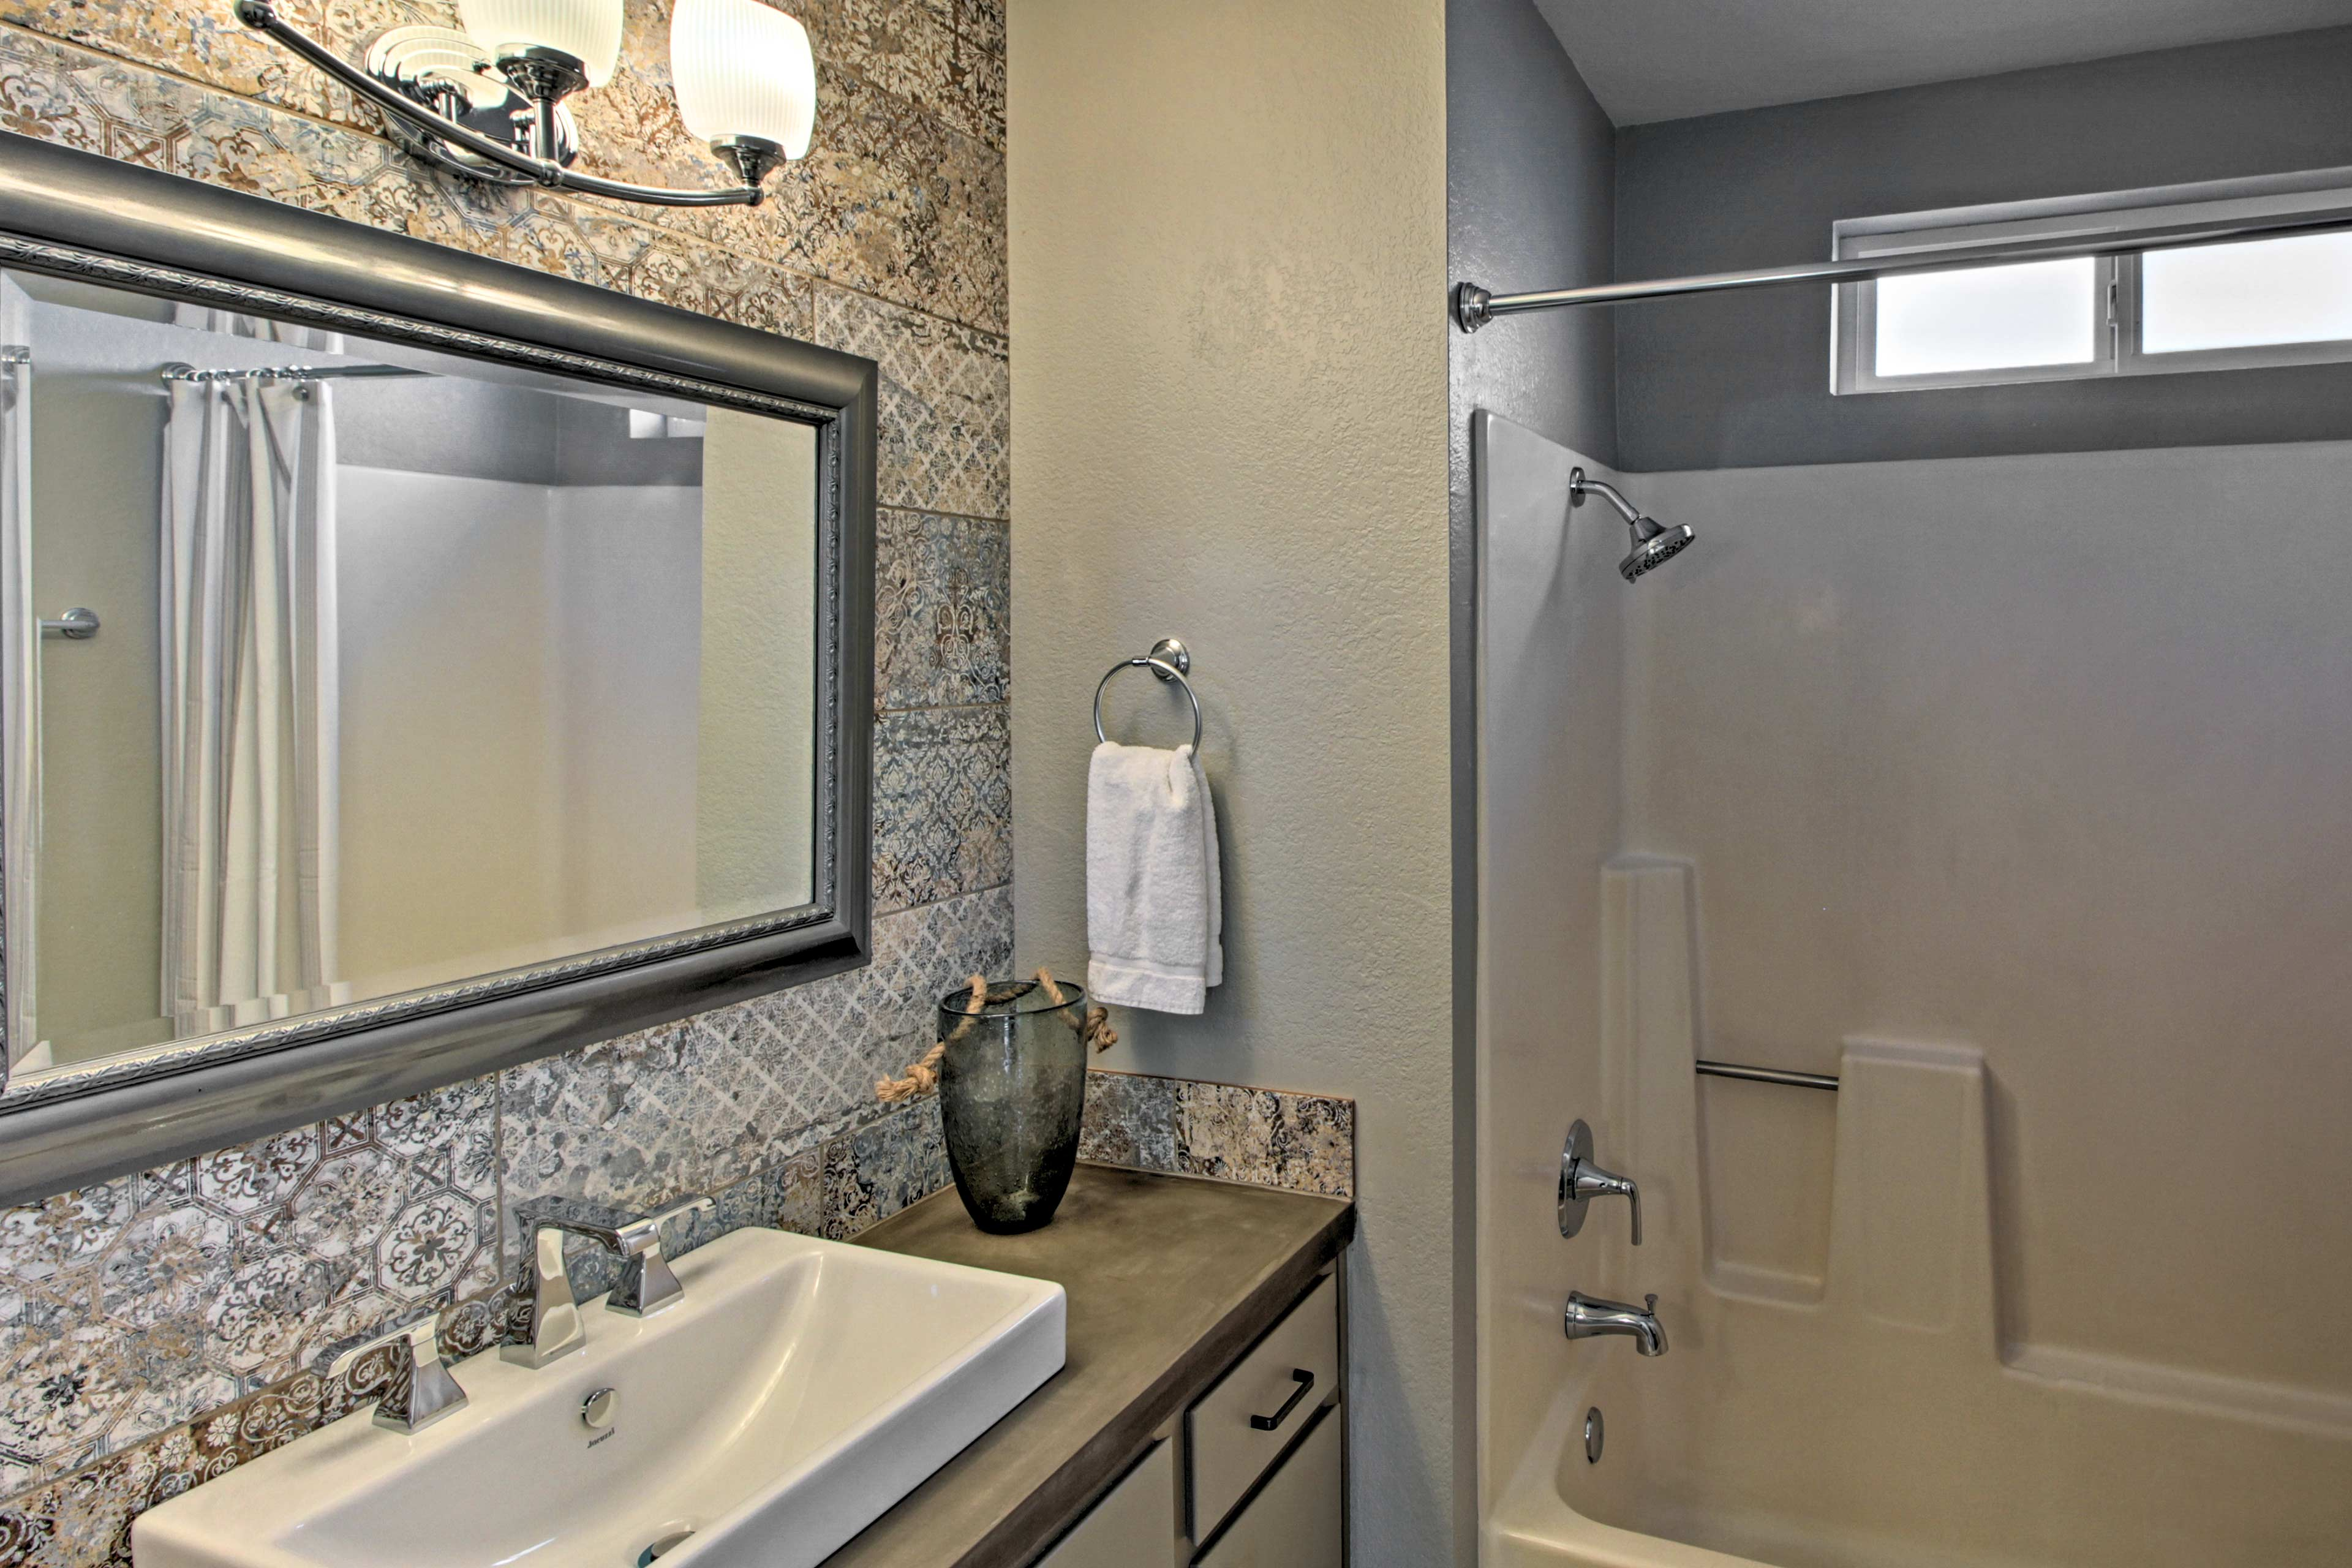 Wash up in the full bath, equipped with a shower/tub combo and single vanity.